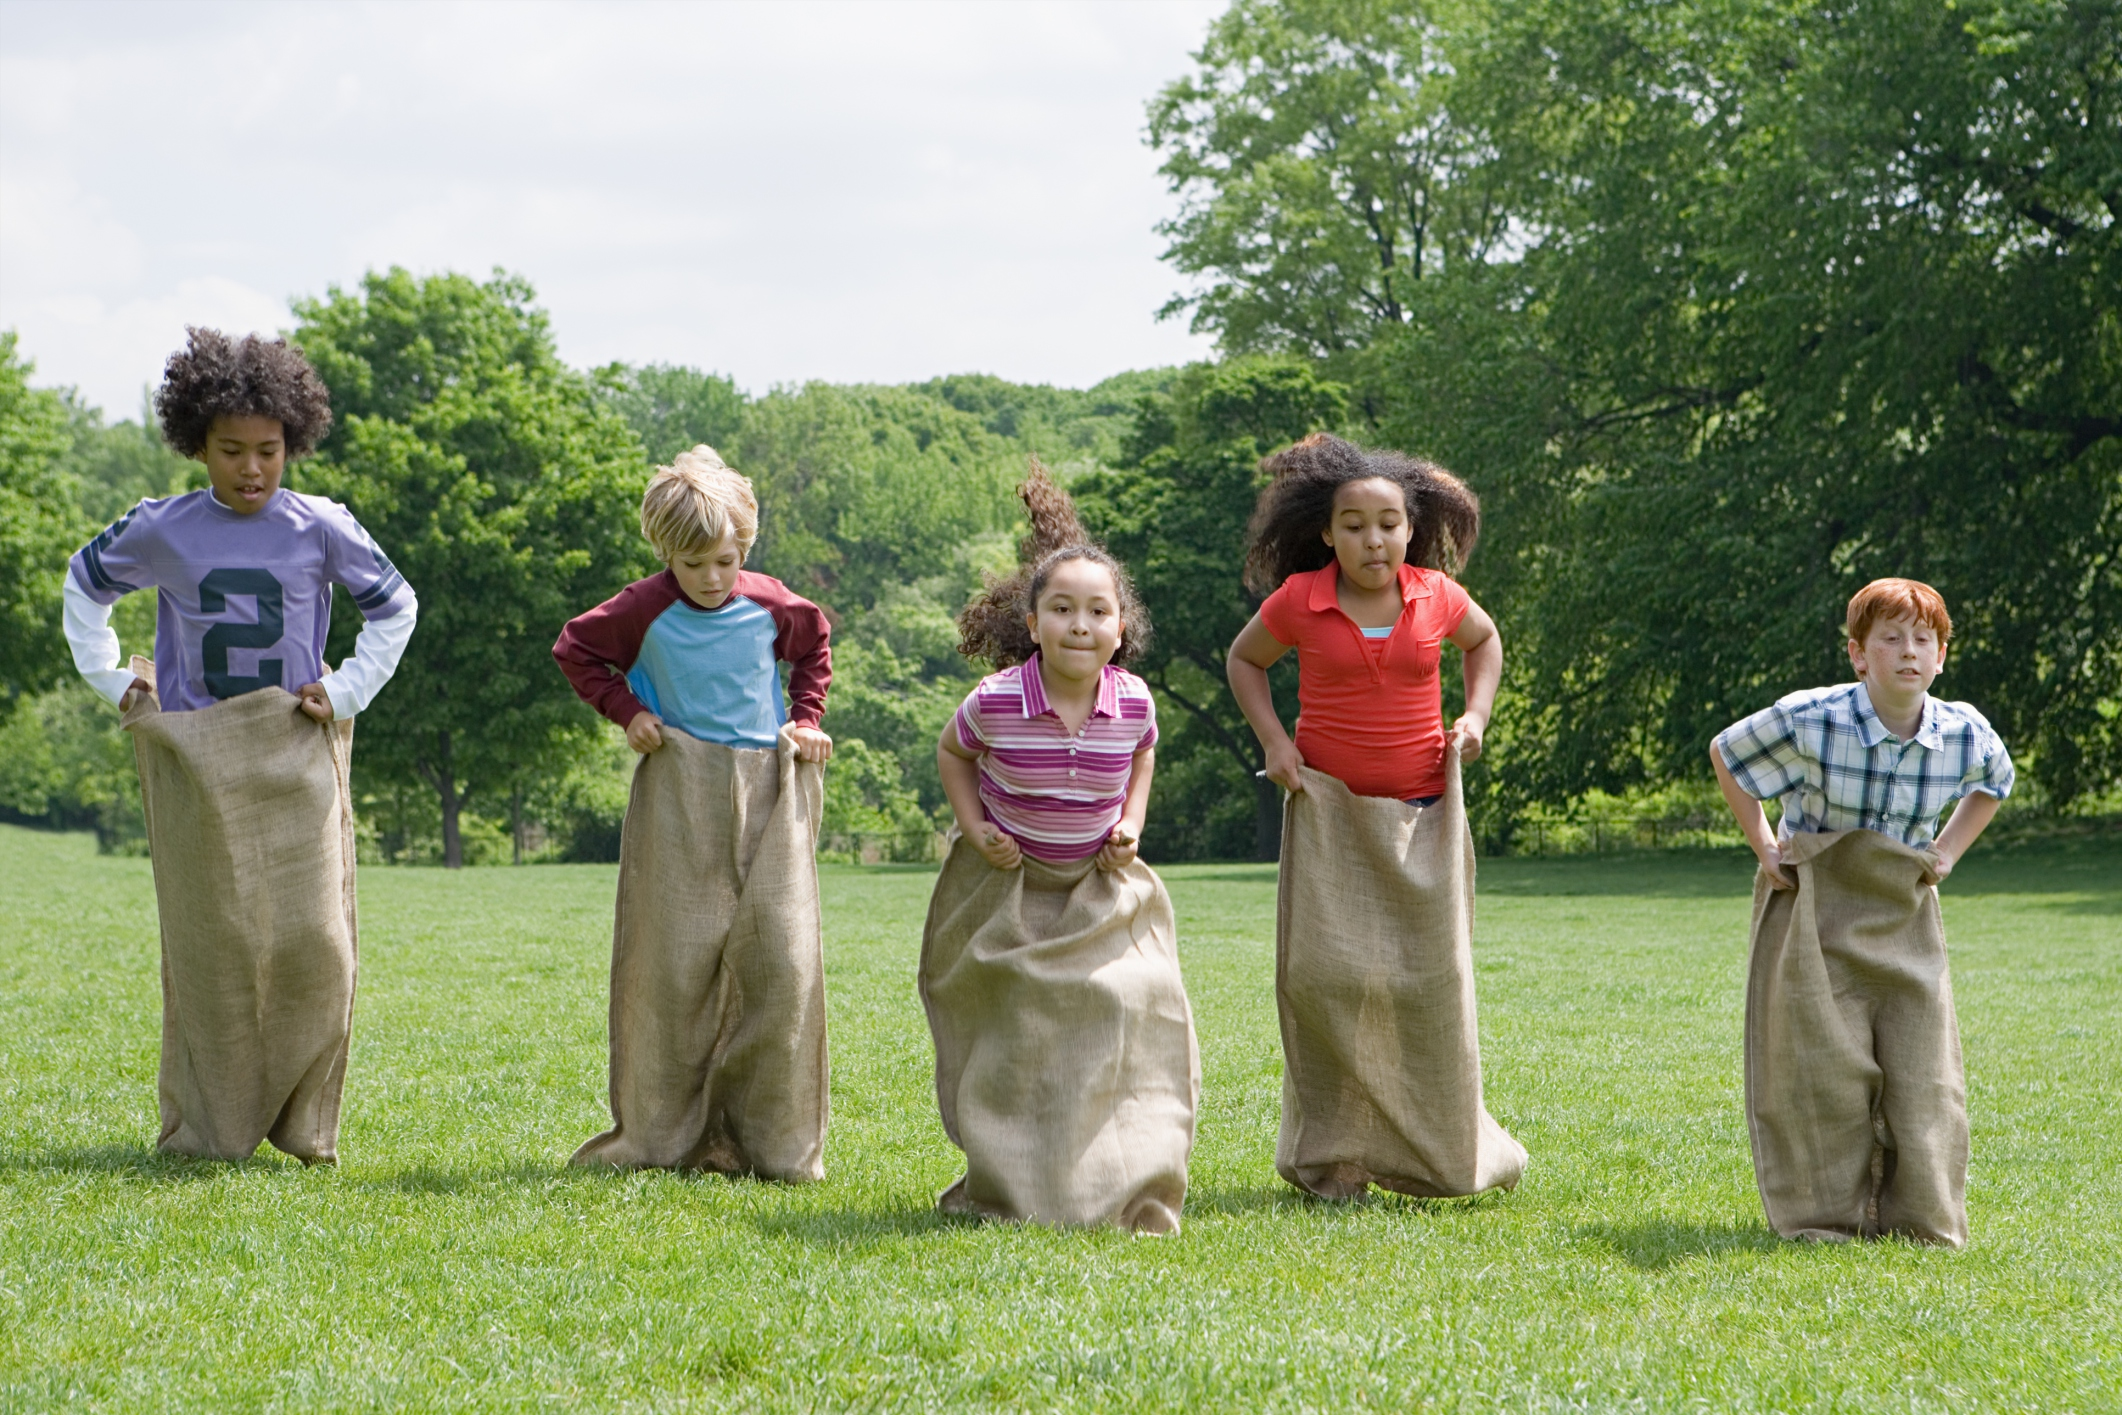 Group of kids playing a potato sack race game at a children's event.